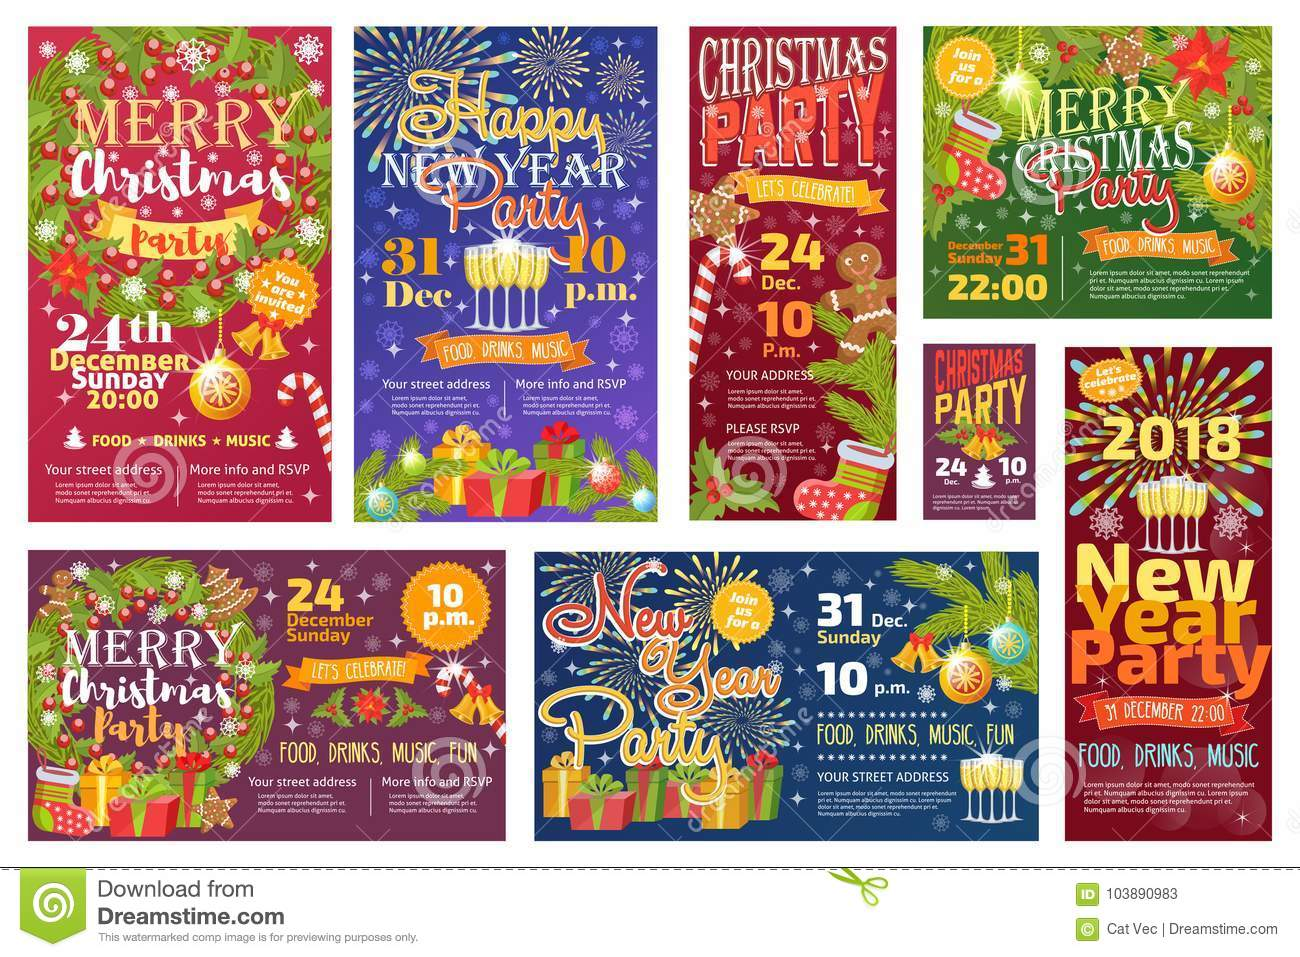 christmas party invitation vector card background design template for noel xmas holiday celebration clipart new year